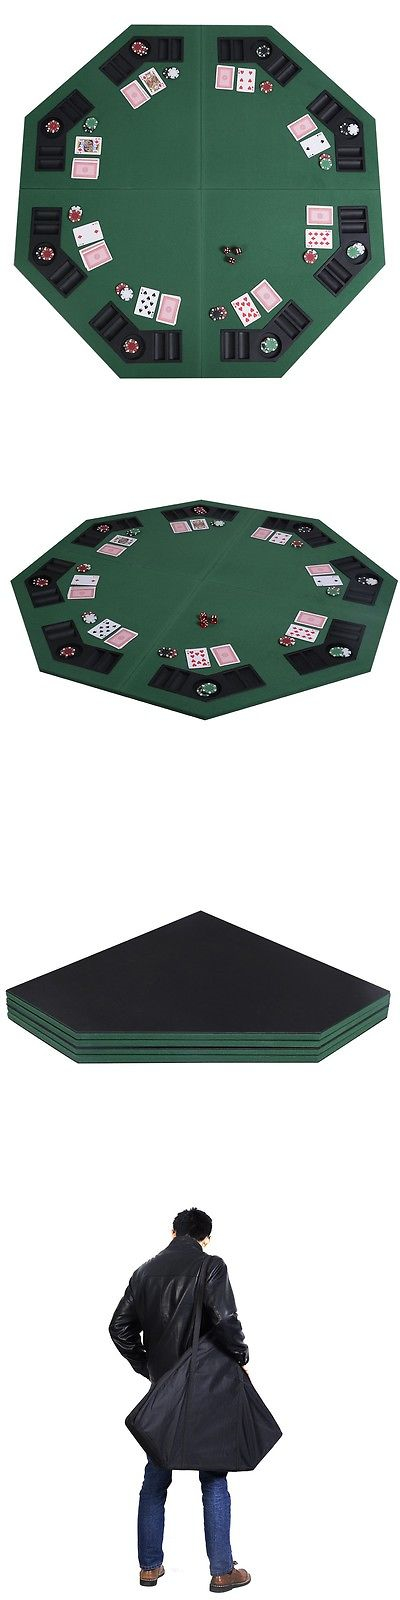 Card Tables And Tabletops 166572: 48 Green Octagon 8 Player Four Fold  Folding Poker Table